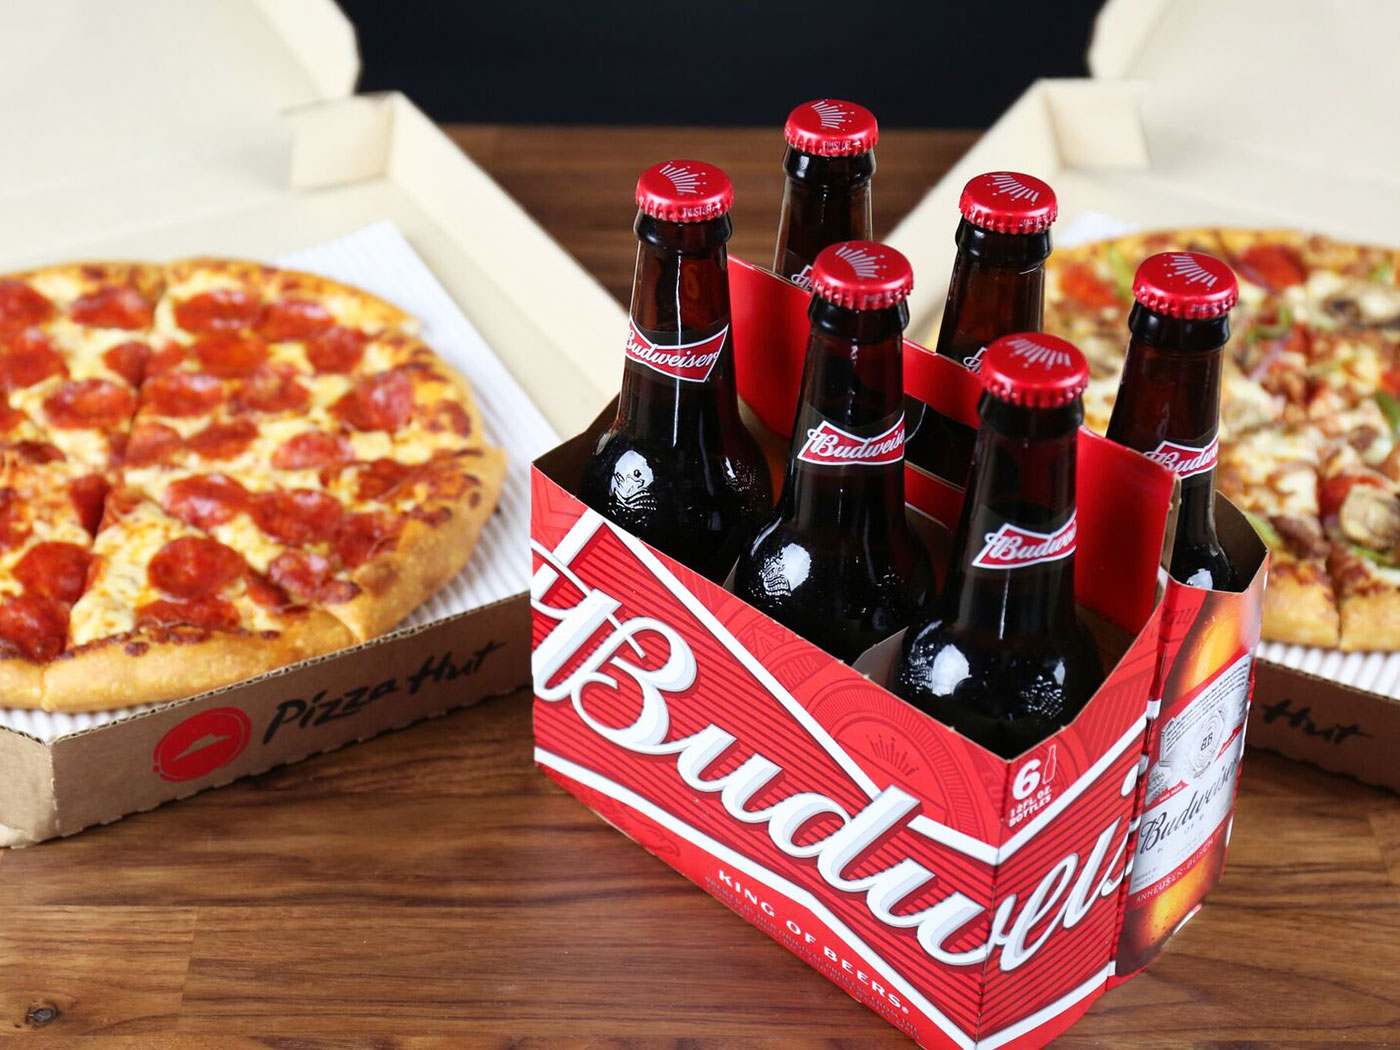 Pizza Hut is testing beer and wine delivery